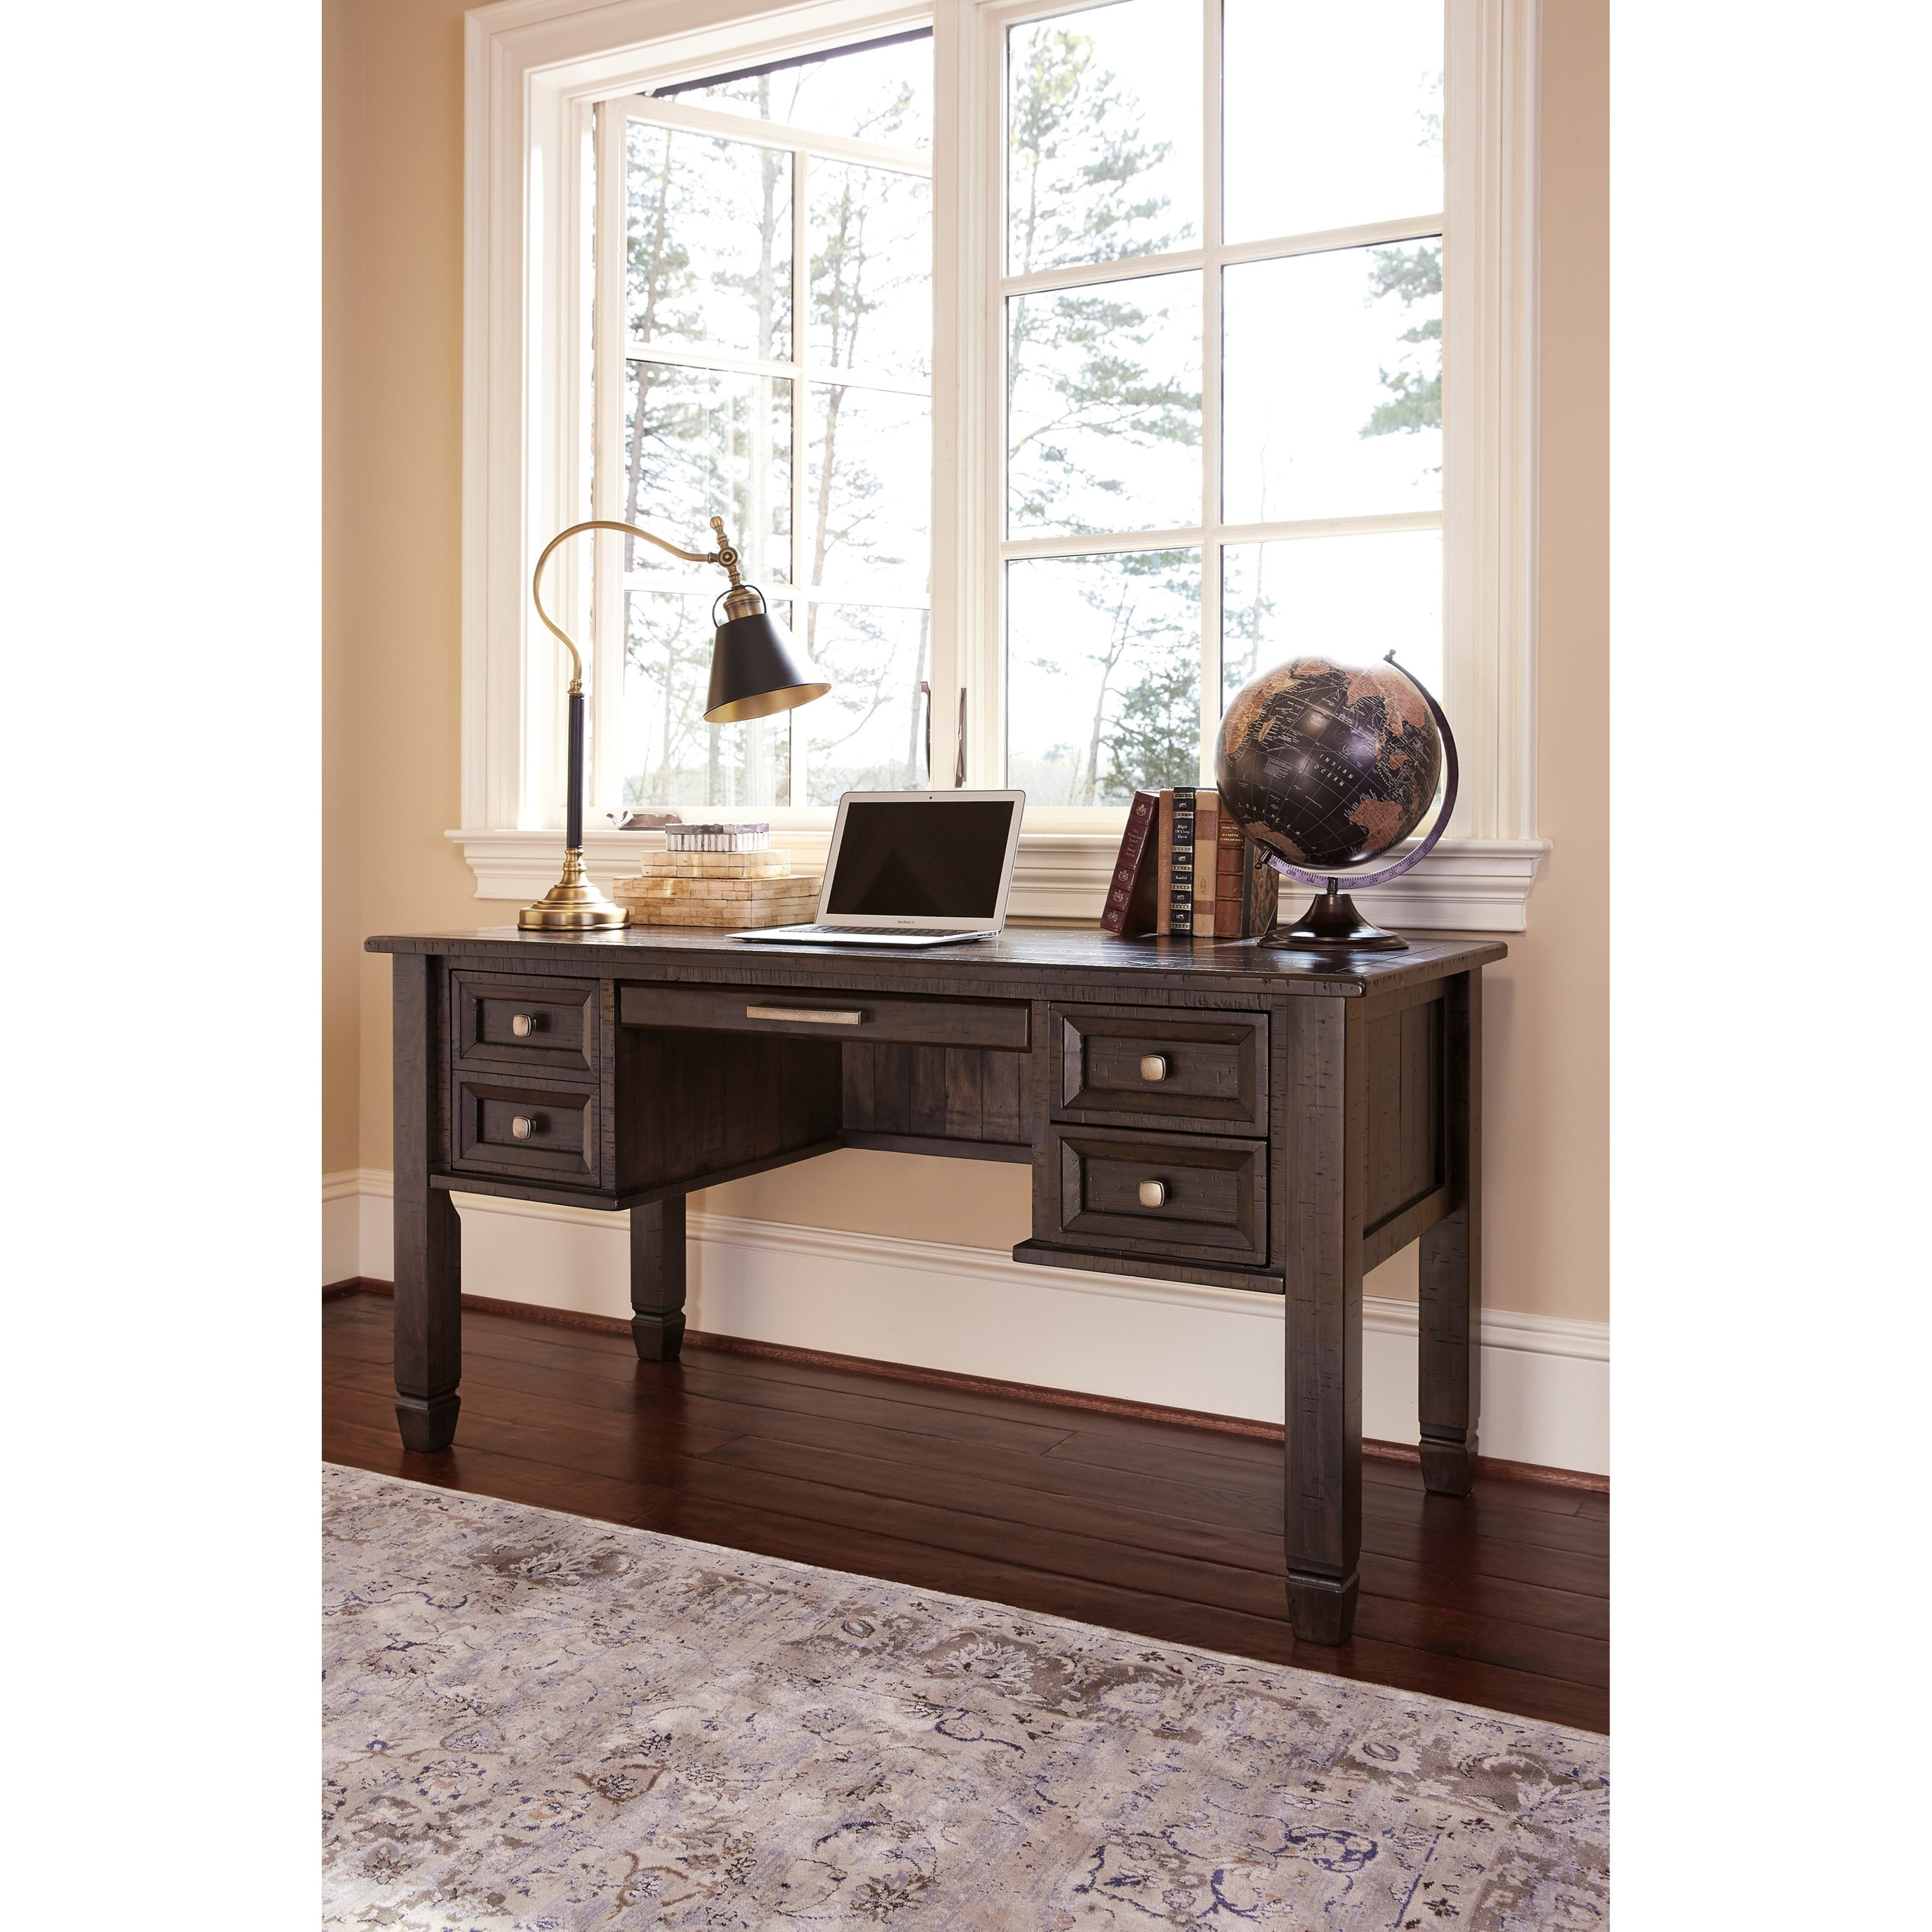 Ashley Furniture Office Desk: Signature Design By Ashley Townser H636-27 Solid Pine Home